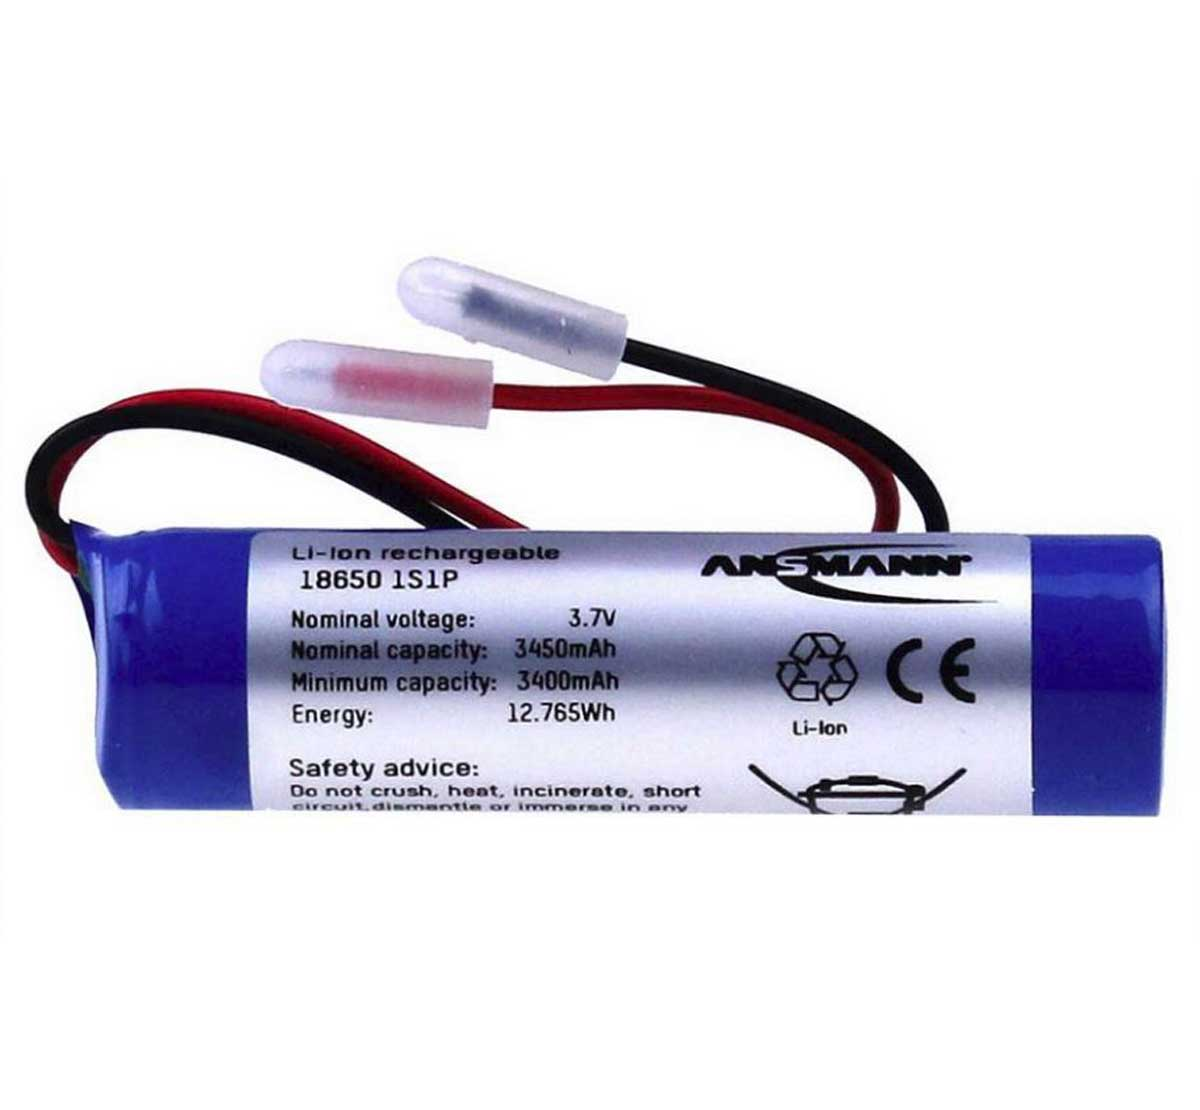 Ansmann Industrial 1S1P 3.7V 3450mAh High Capacity Rechargeable Li-ion Battery Pack